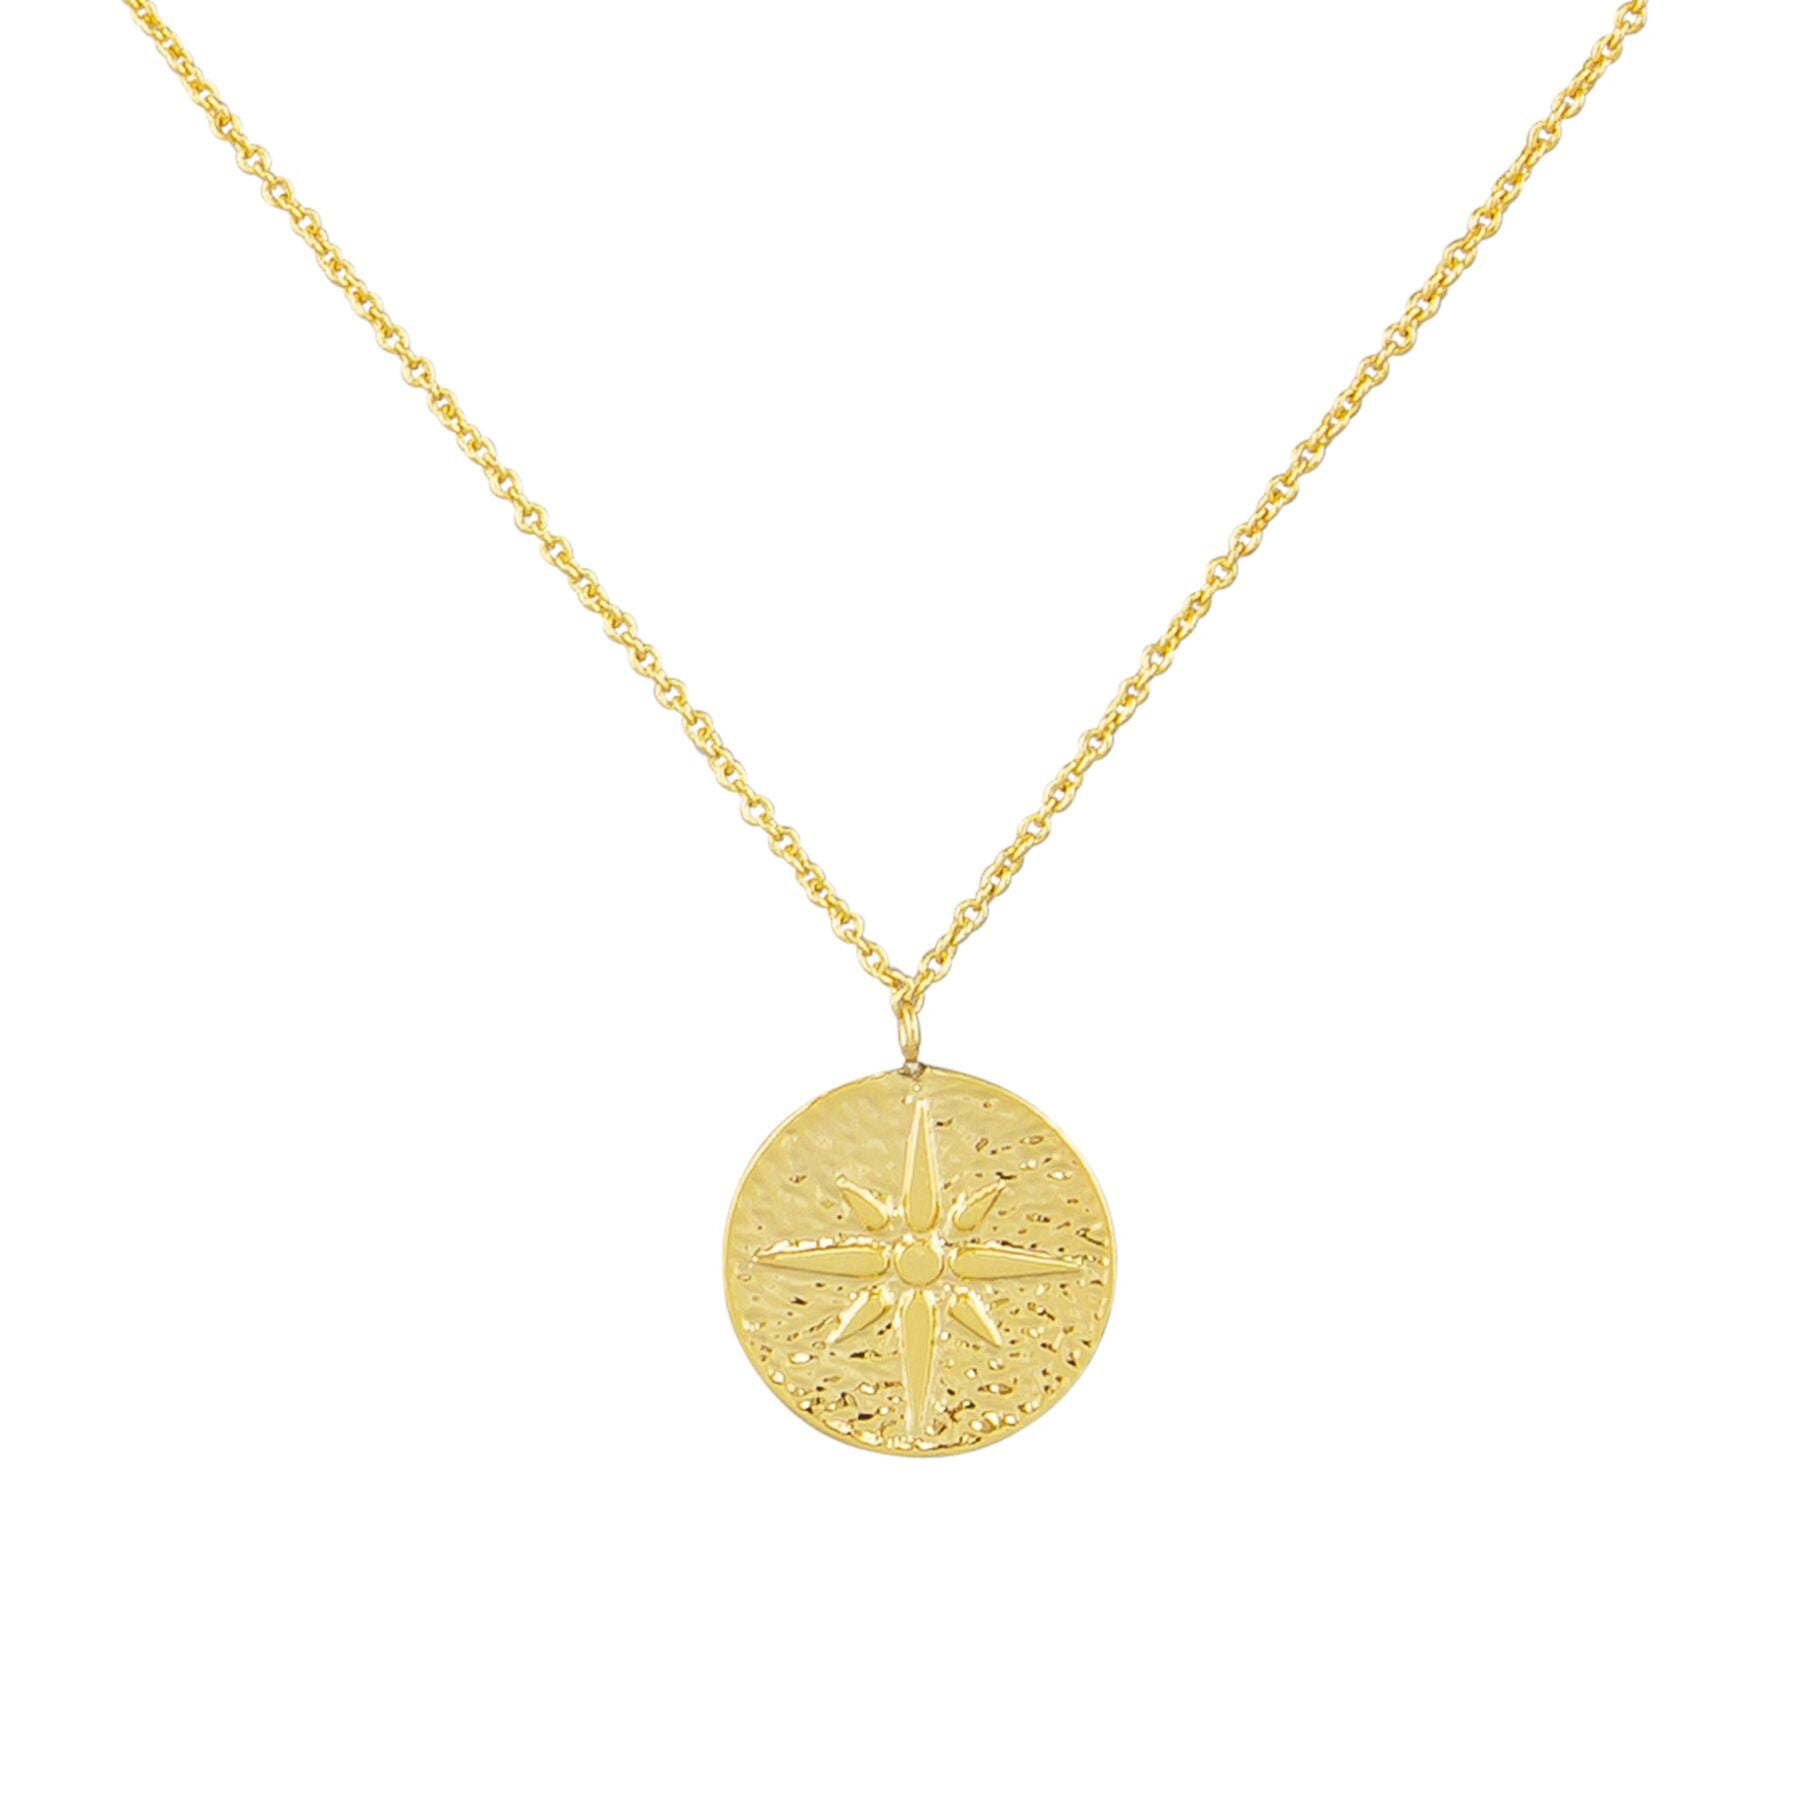 Tiger Tree pendant necklace | gold compass